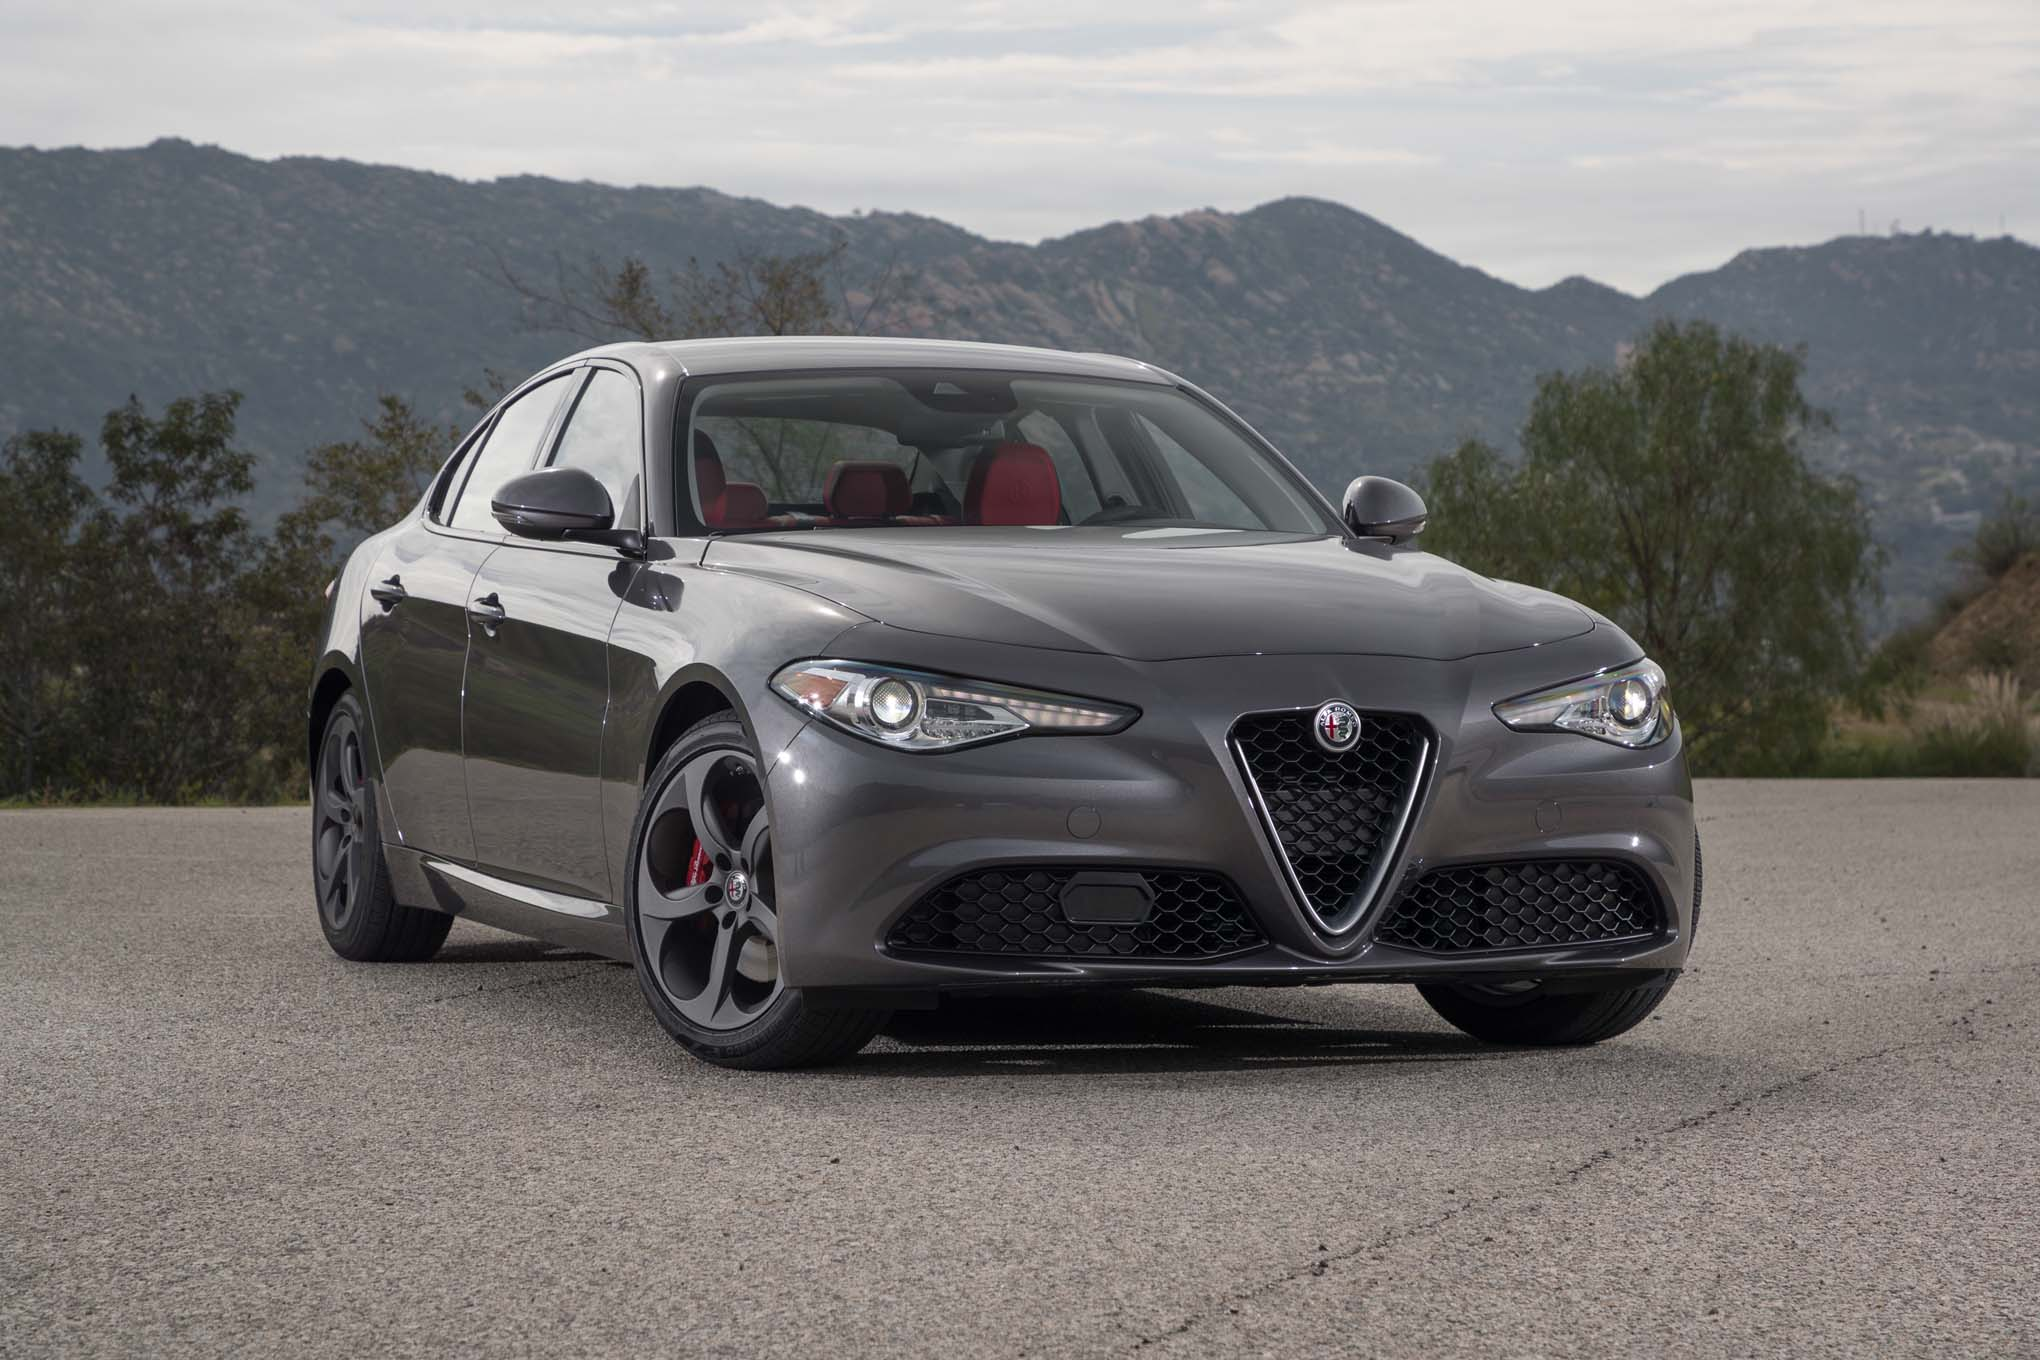 2017 Alfa Romeo Giulia 20 front three quarter